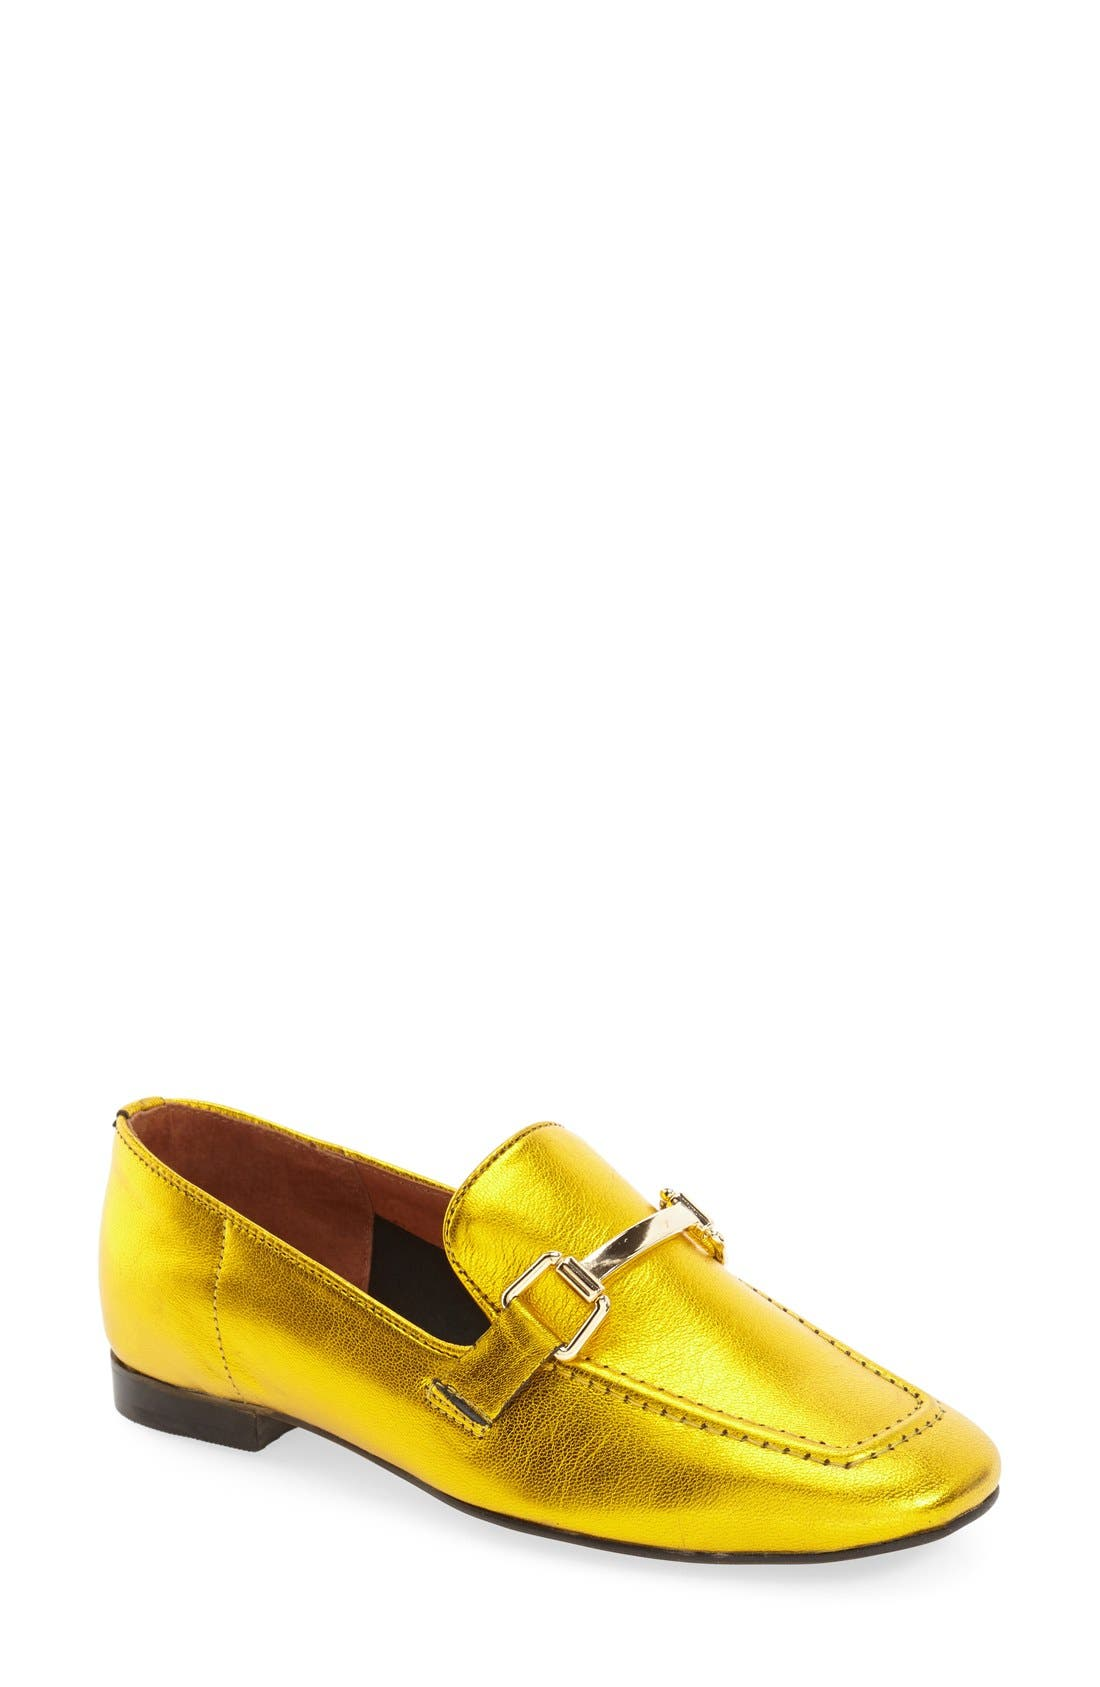 Main Image - Topshop 'Karter' Square Toe Loafer (Women)